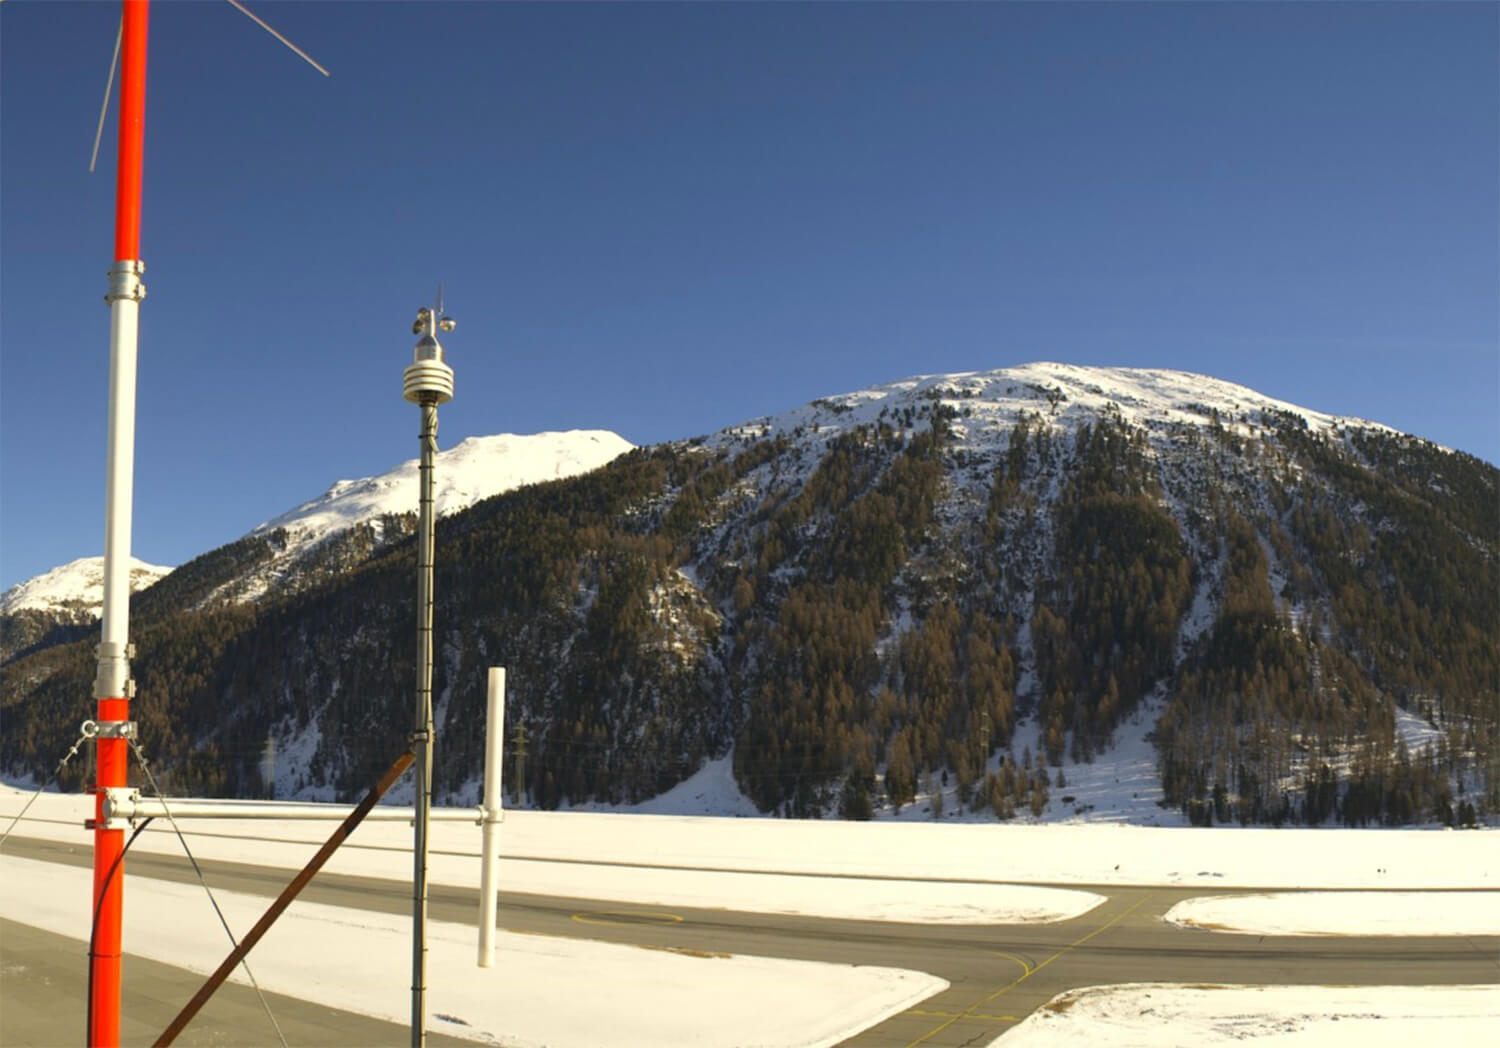 - Engadin video roundshot. Click to view!